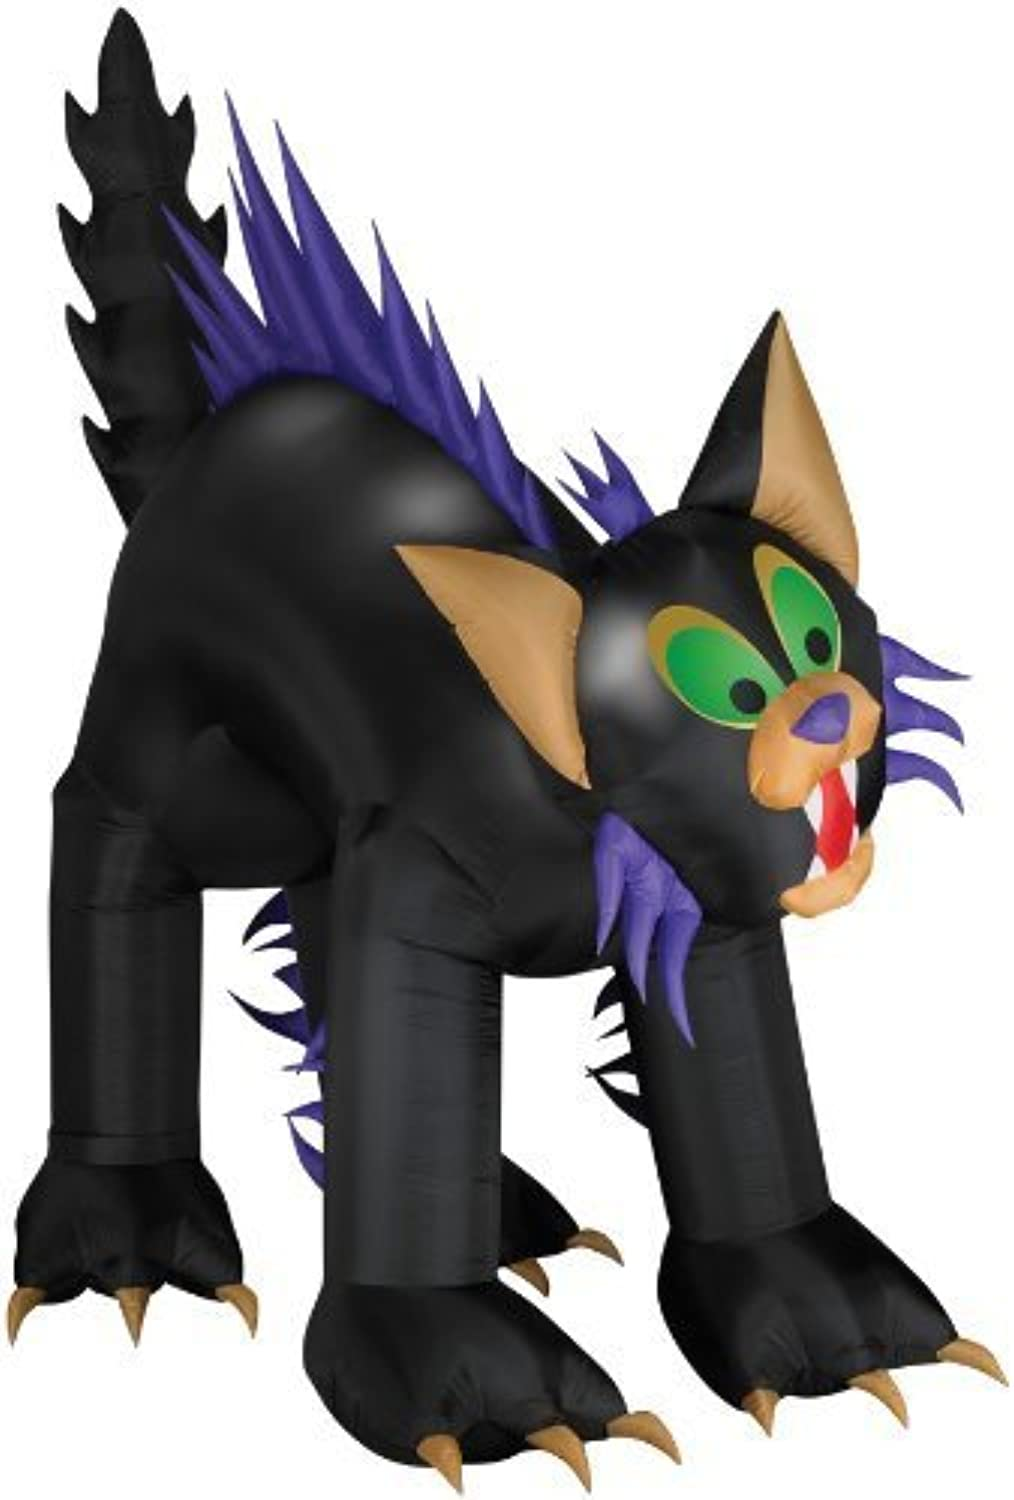 AIRBLOWN ANIMATED BRAT CAT HALLOWEEN PROP Gemmy Yard Decoration House Scary - SS64068G by Gemmy